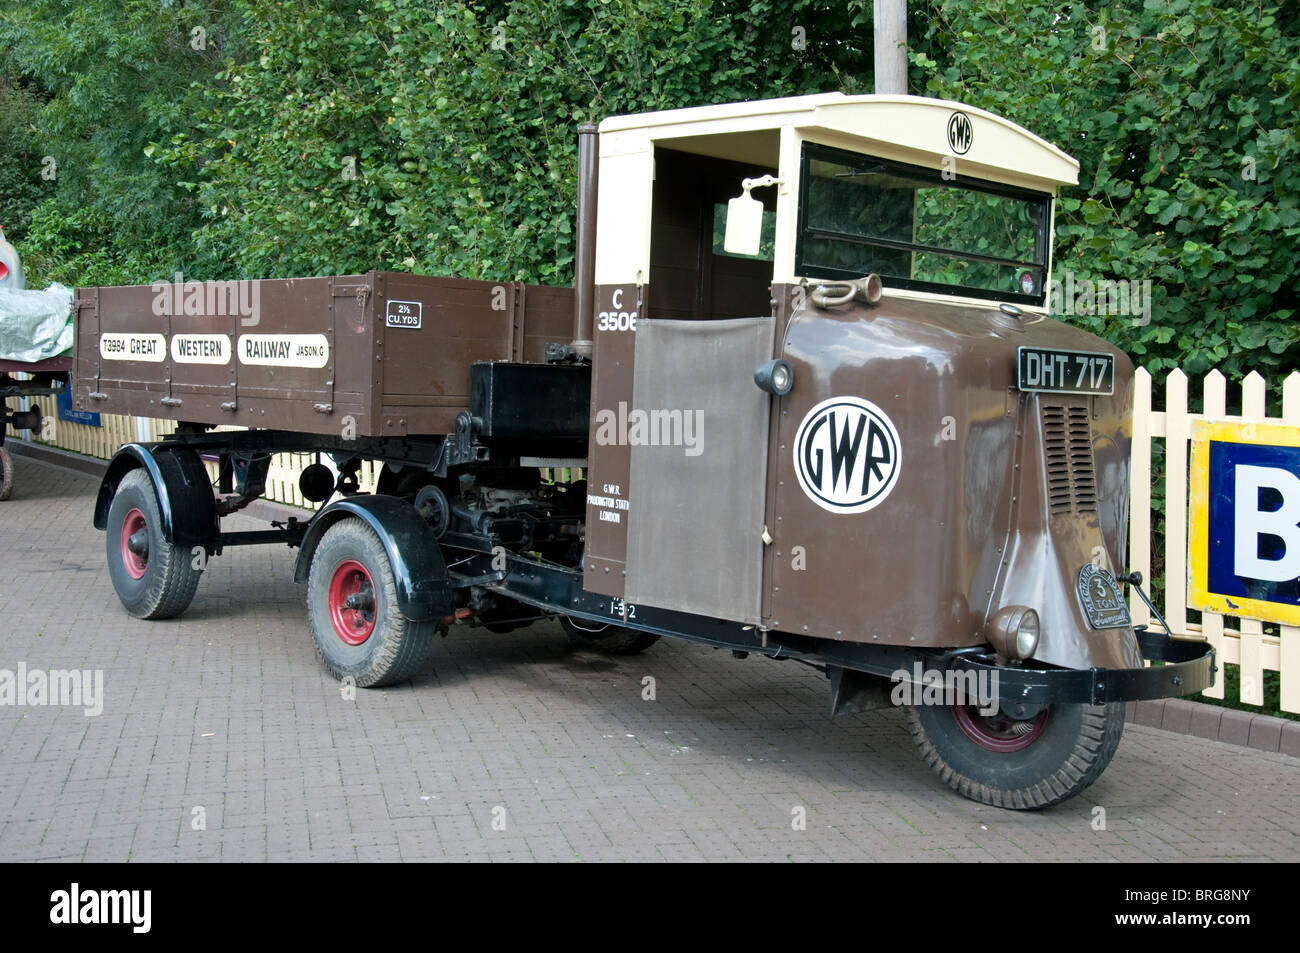 Scammell Three wheeled truck with trailer - Stock Image